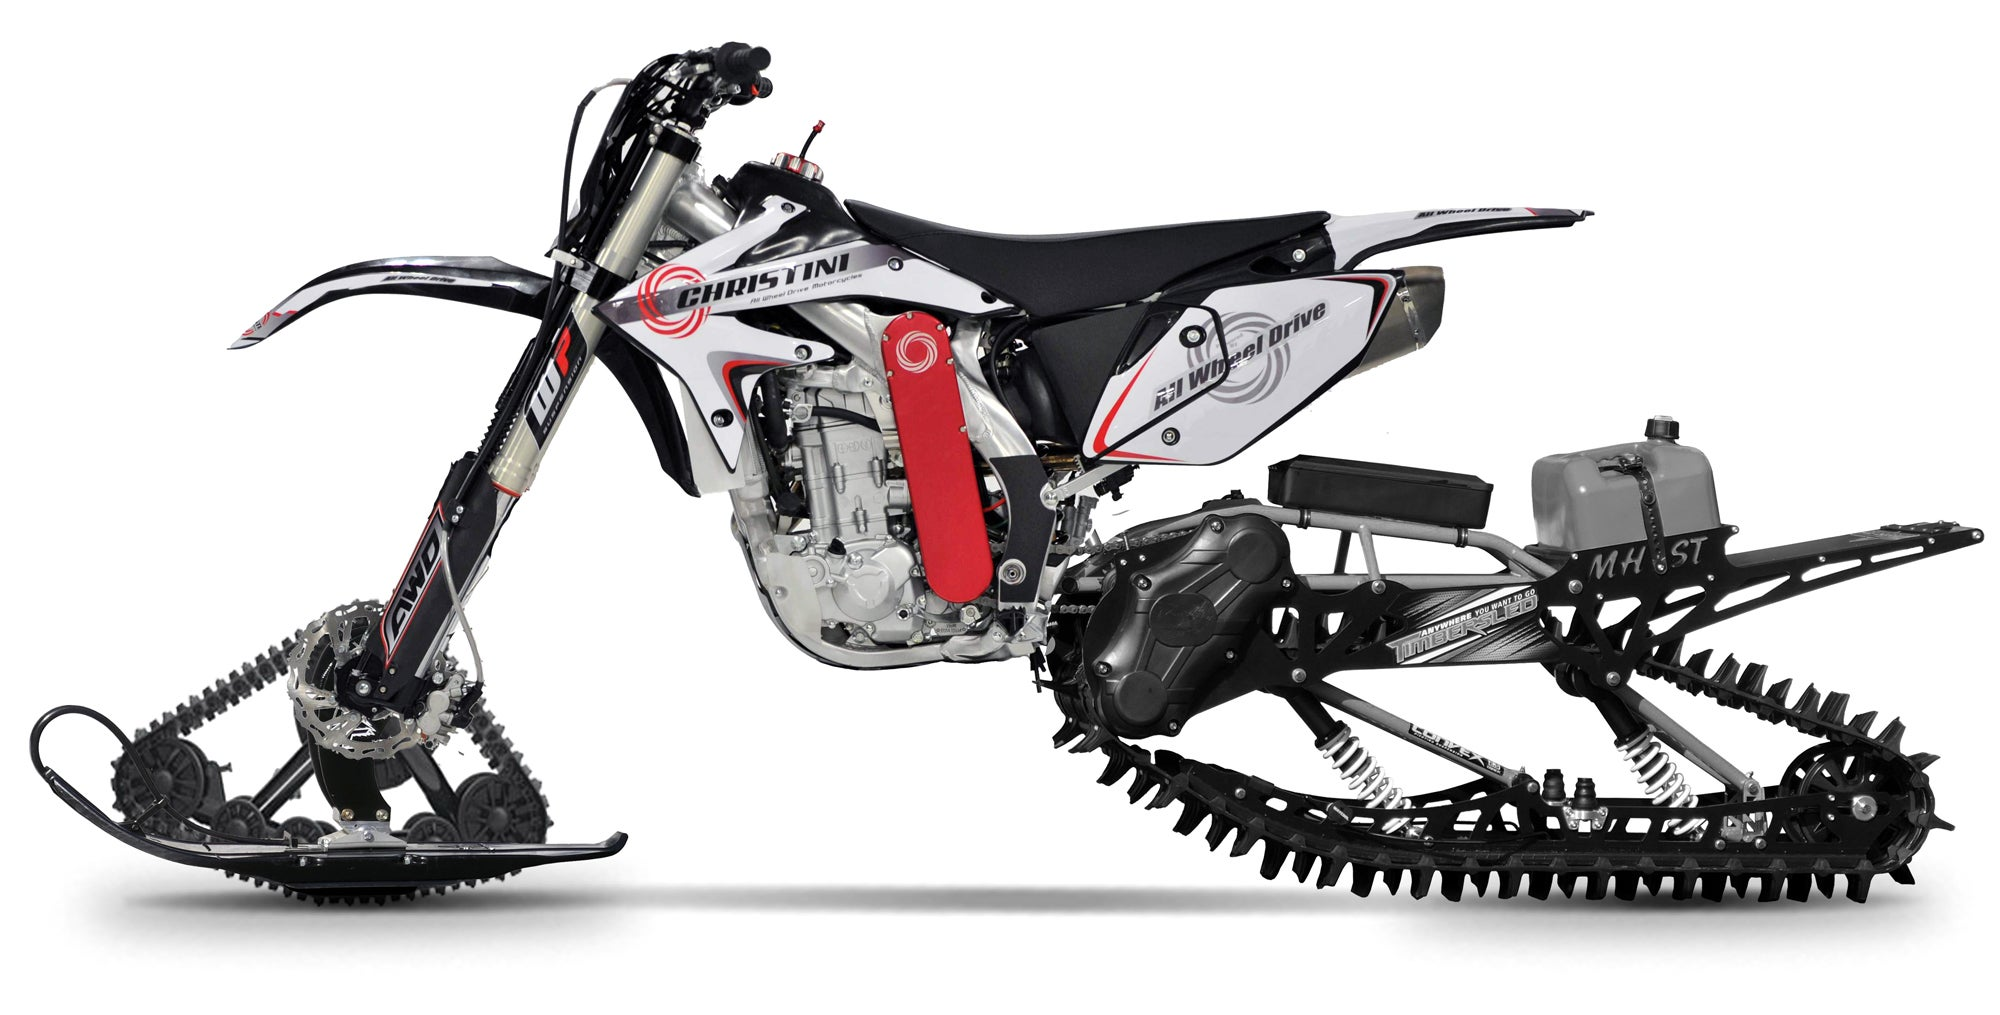 This Motorcycle With Snowmobile Tracks Is The Most Overkill Way To Navigate Sand And Snow